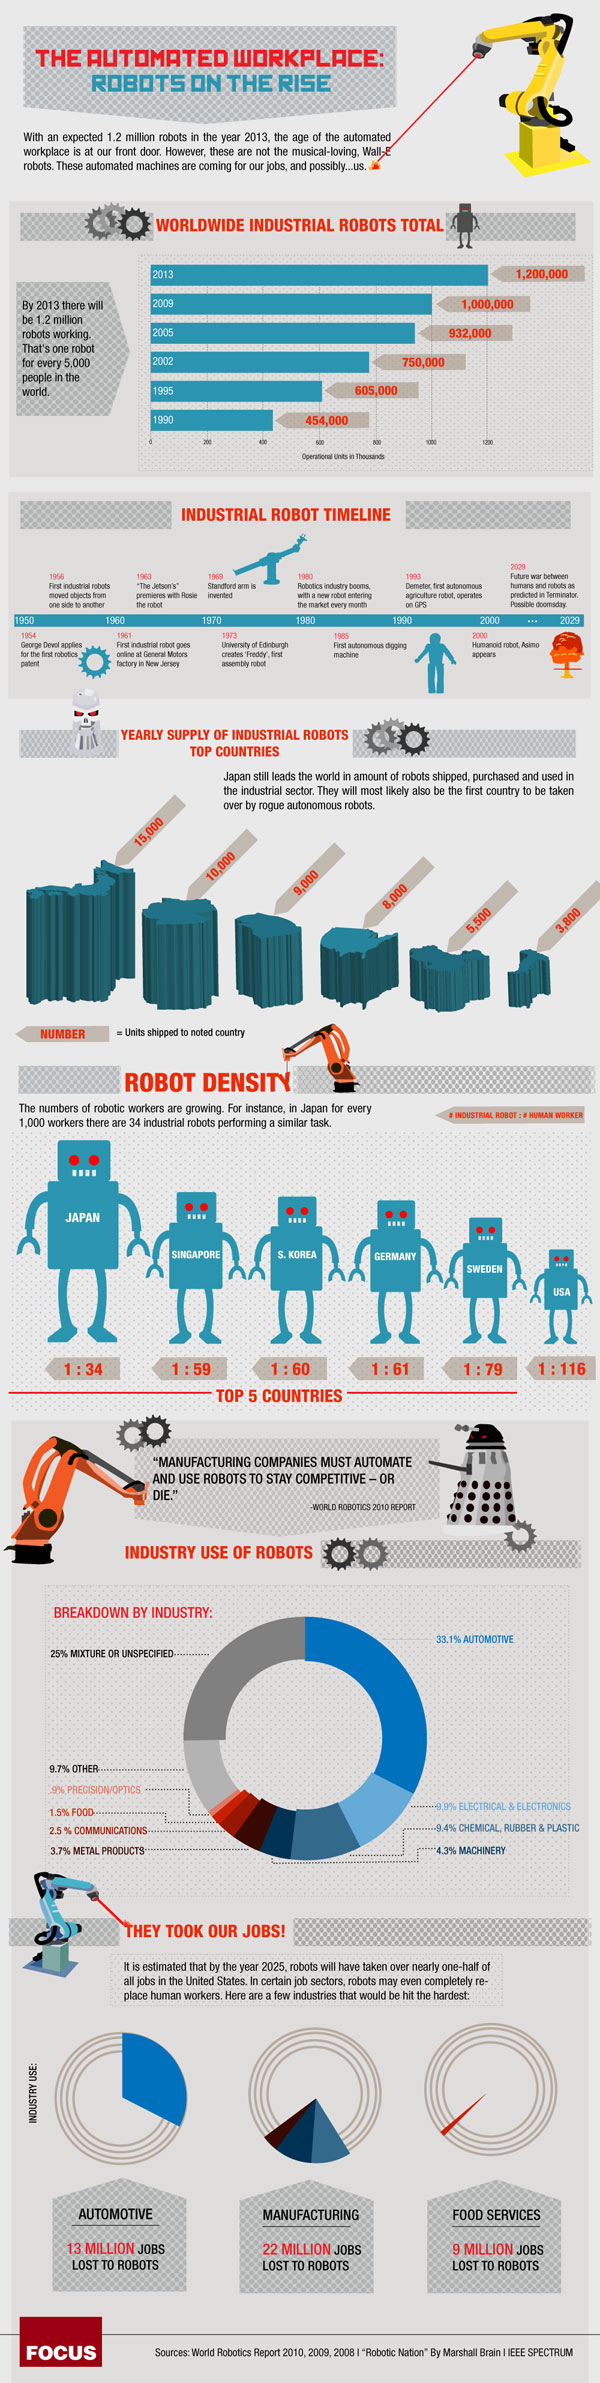 2e1bf73f0b9d5640ea73f15b812341dd Statistics Show How Robots are Increasing Unemployment